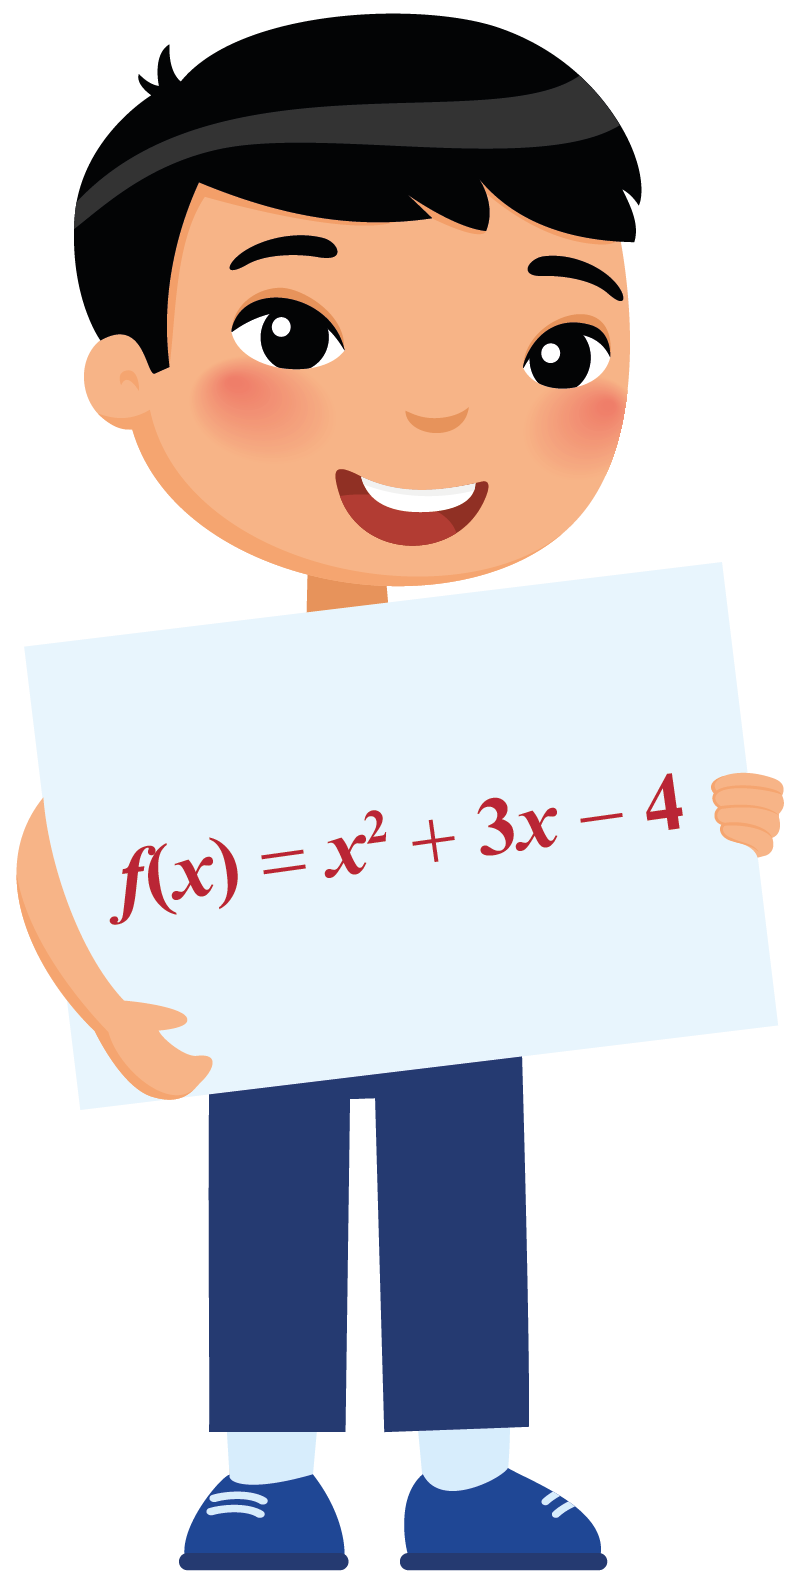 Jack shows a quadratic function. Find the discriminant